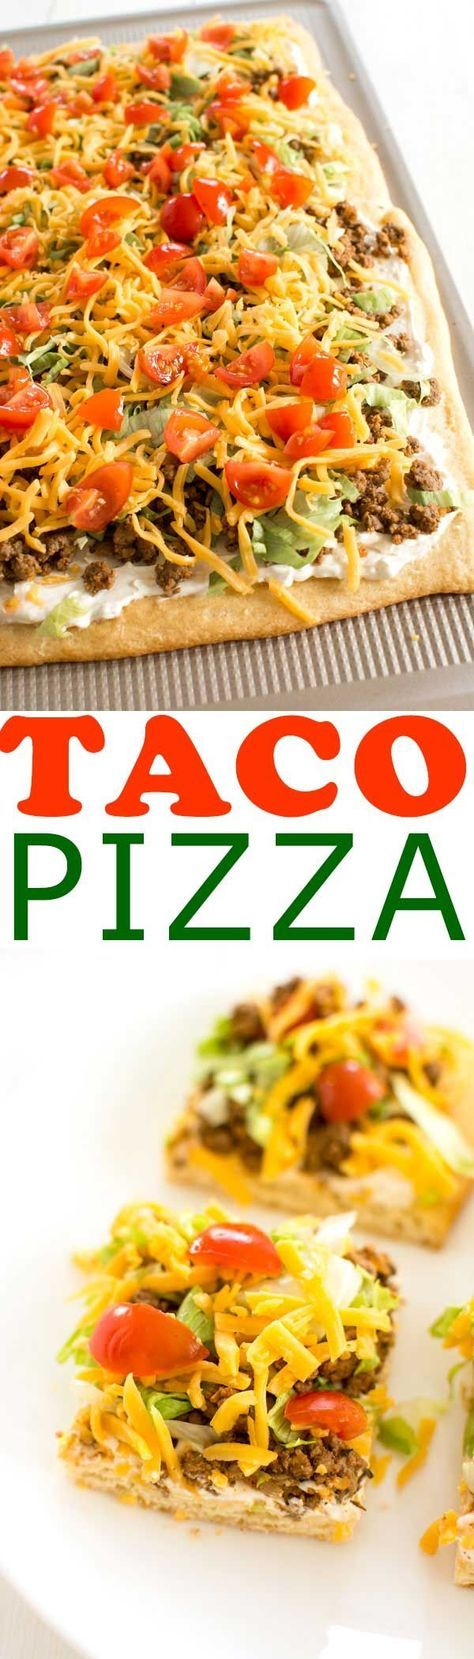 Taco Pizza ~ an appetizer with a crescent roll crust and easy cream cheese sauce that is so zesty! #taco #pizza #tacotuesday #recipes #recipe #recipeideas #easyrecipe #food #foodgawker #foodblog #recipeoftheday #appetizer #cheese #partyfood #dinner